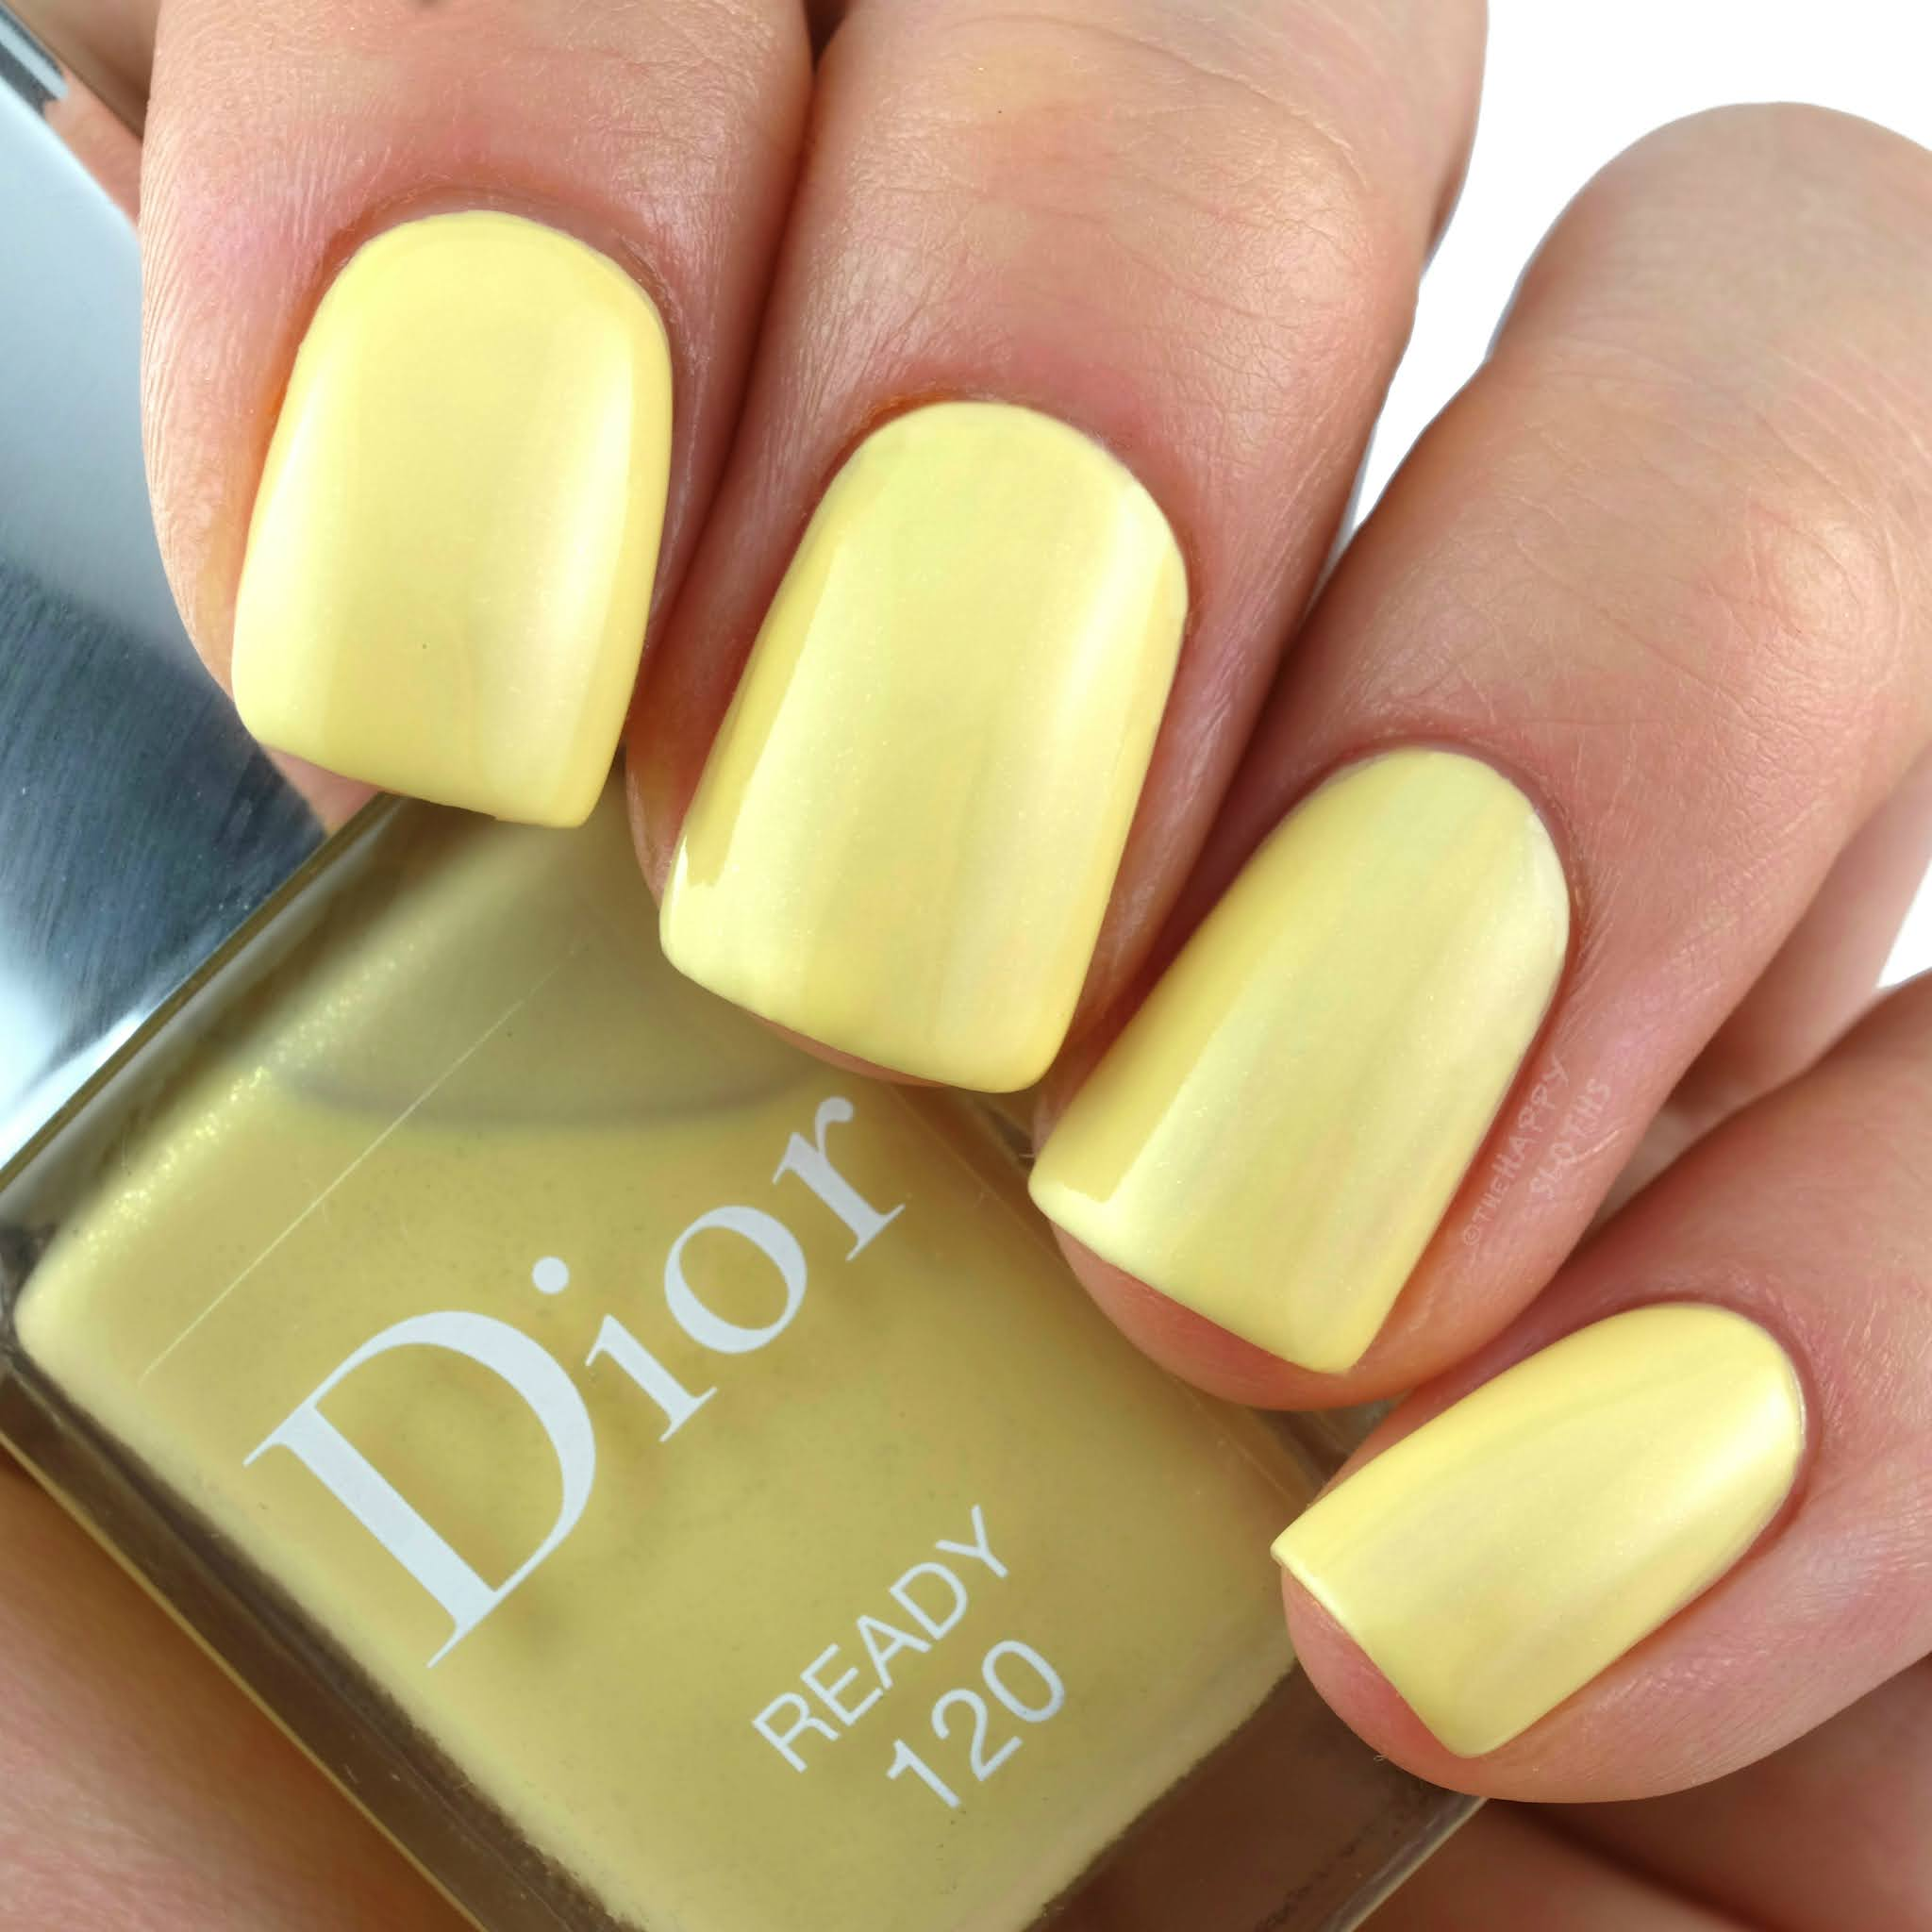 "Dior Summer 2020 | Dior Vernis Color Games Nail Lacquer in ""120 Ready"": Review and Swatches"